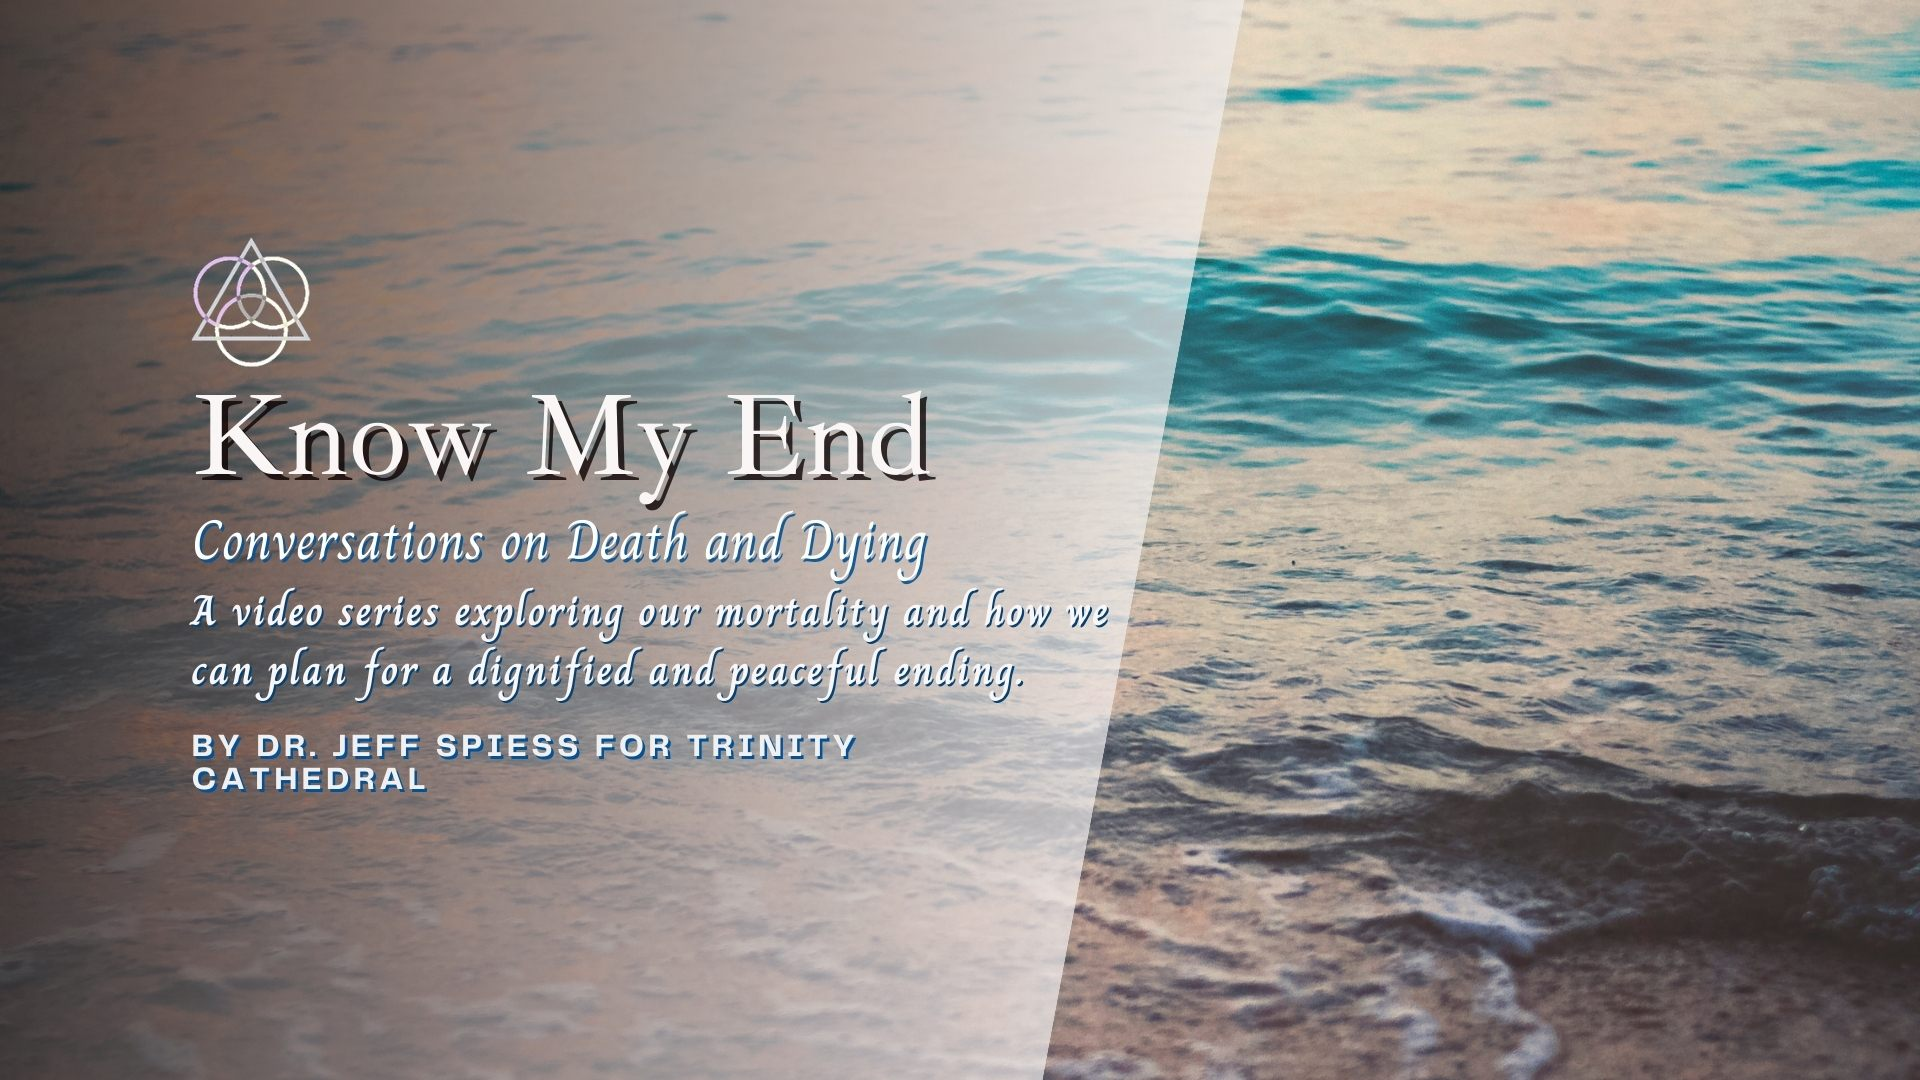 Know My End: Conversations on Death and Dying